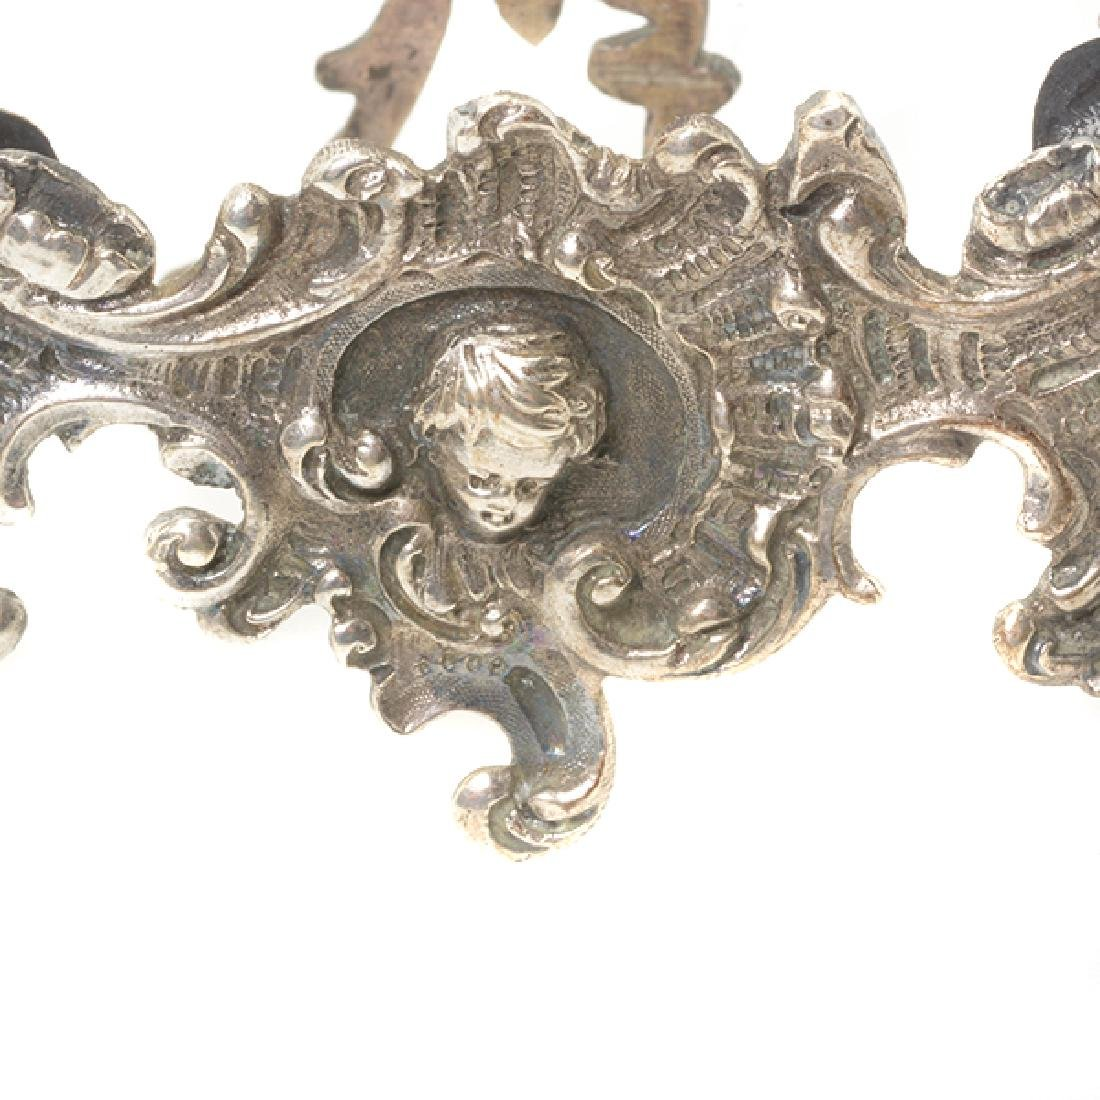 Eleven English Sterling Napkin Rings and Rococo Style - 3